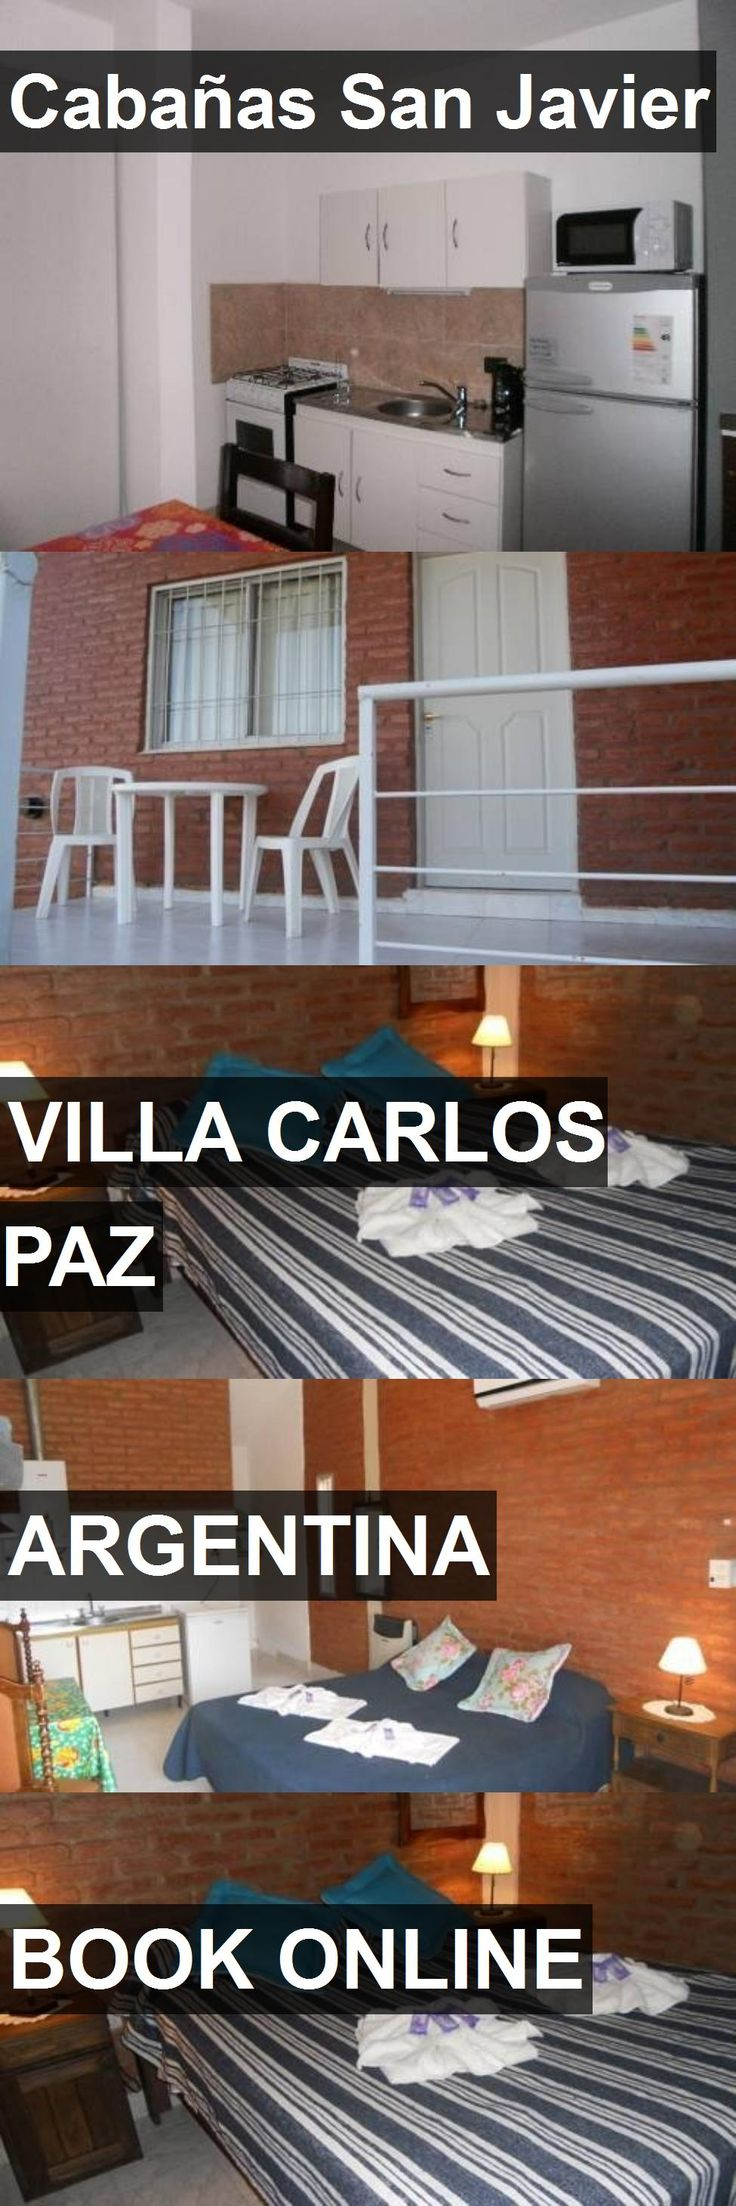 Hotel Cabañas San Javier in Villa Carlos Paz, Argentina. For more information, photos, reviews and best prices please follow the link. #Argentina #VillaCarlosPaz #CabañasSanJavier #hotel #travel #vacation